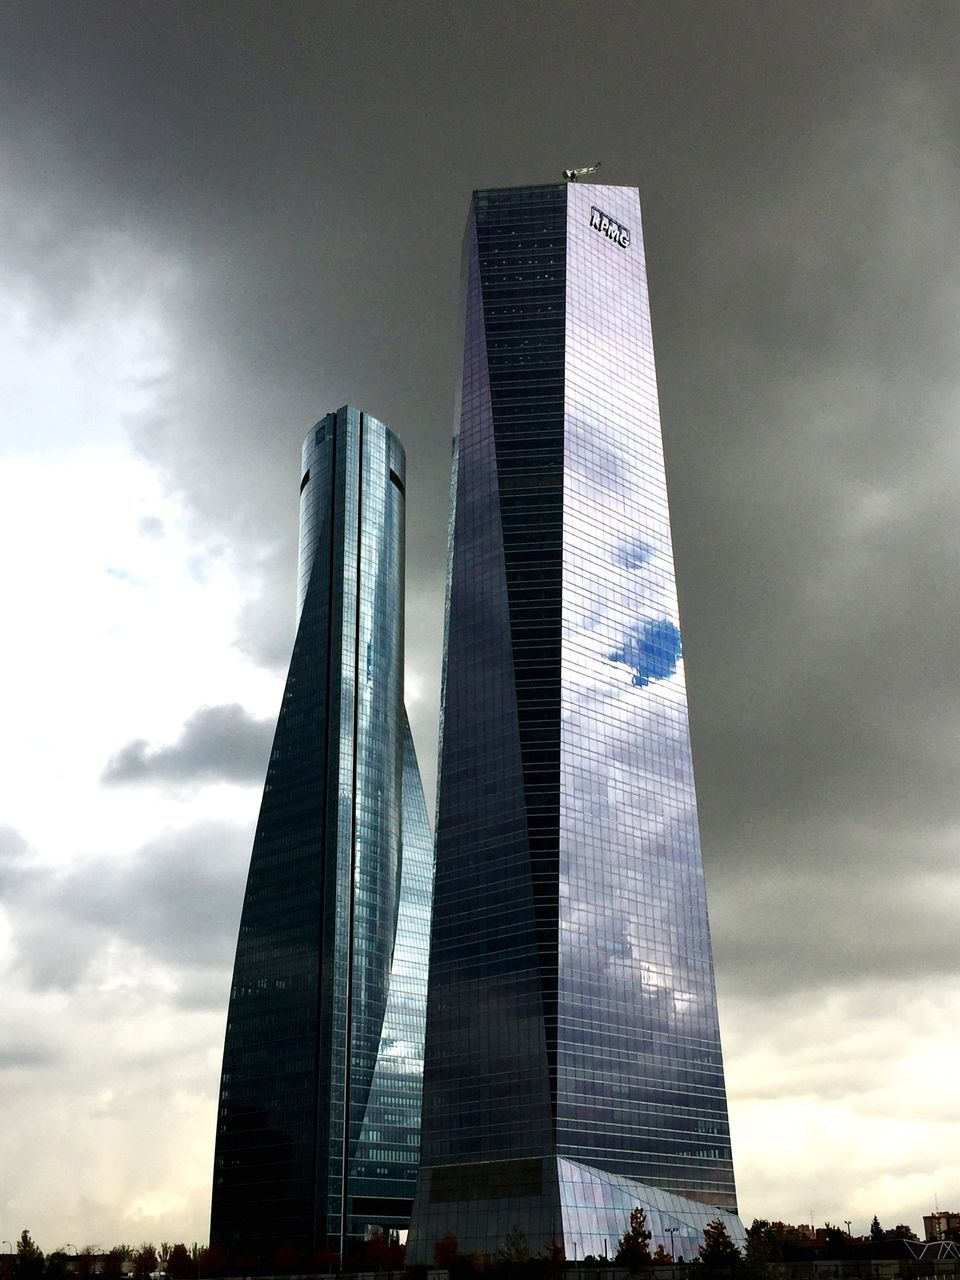 architecture, low angle view, built structure, sky, modern, skyscraper, tall - high, cloud - sky, building exterior, no people, travel destinations, day, outdoors, city